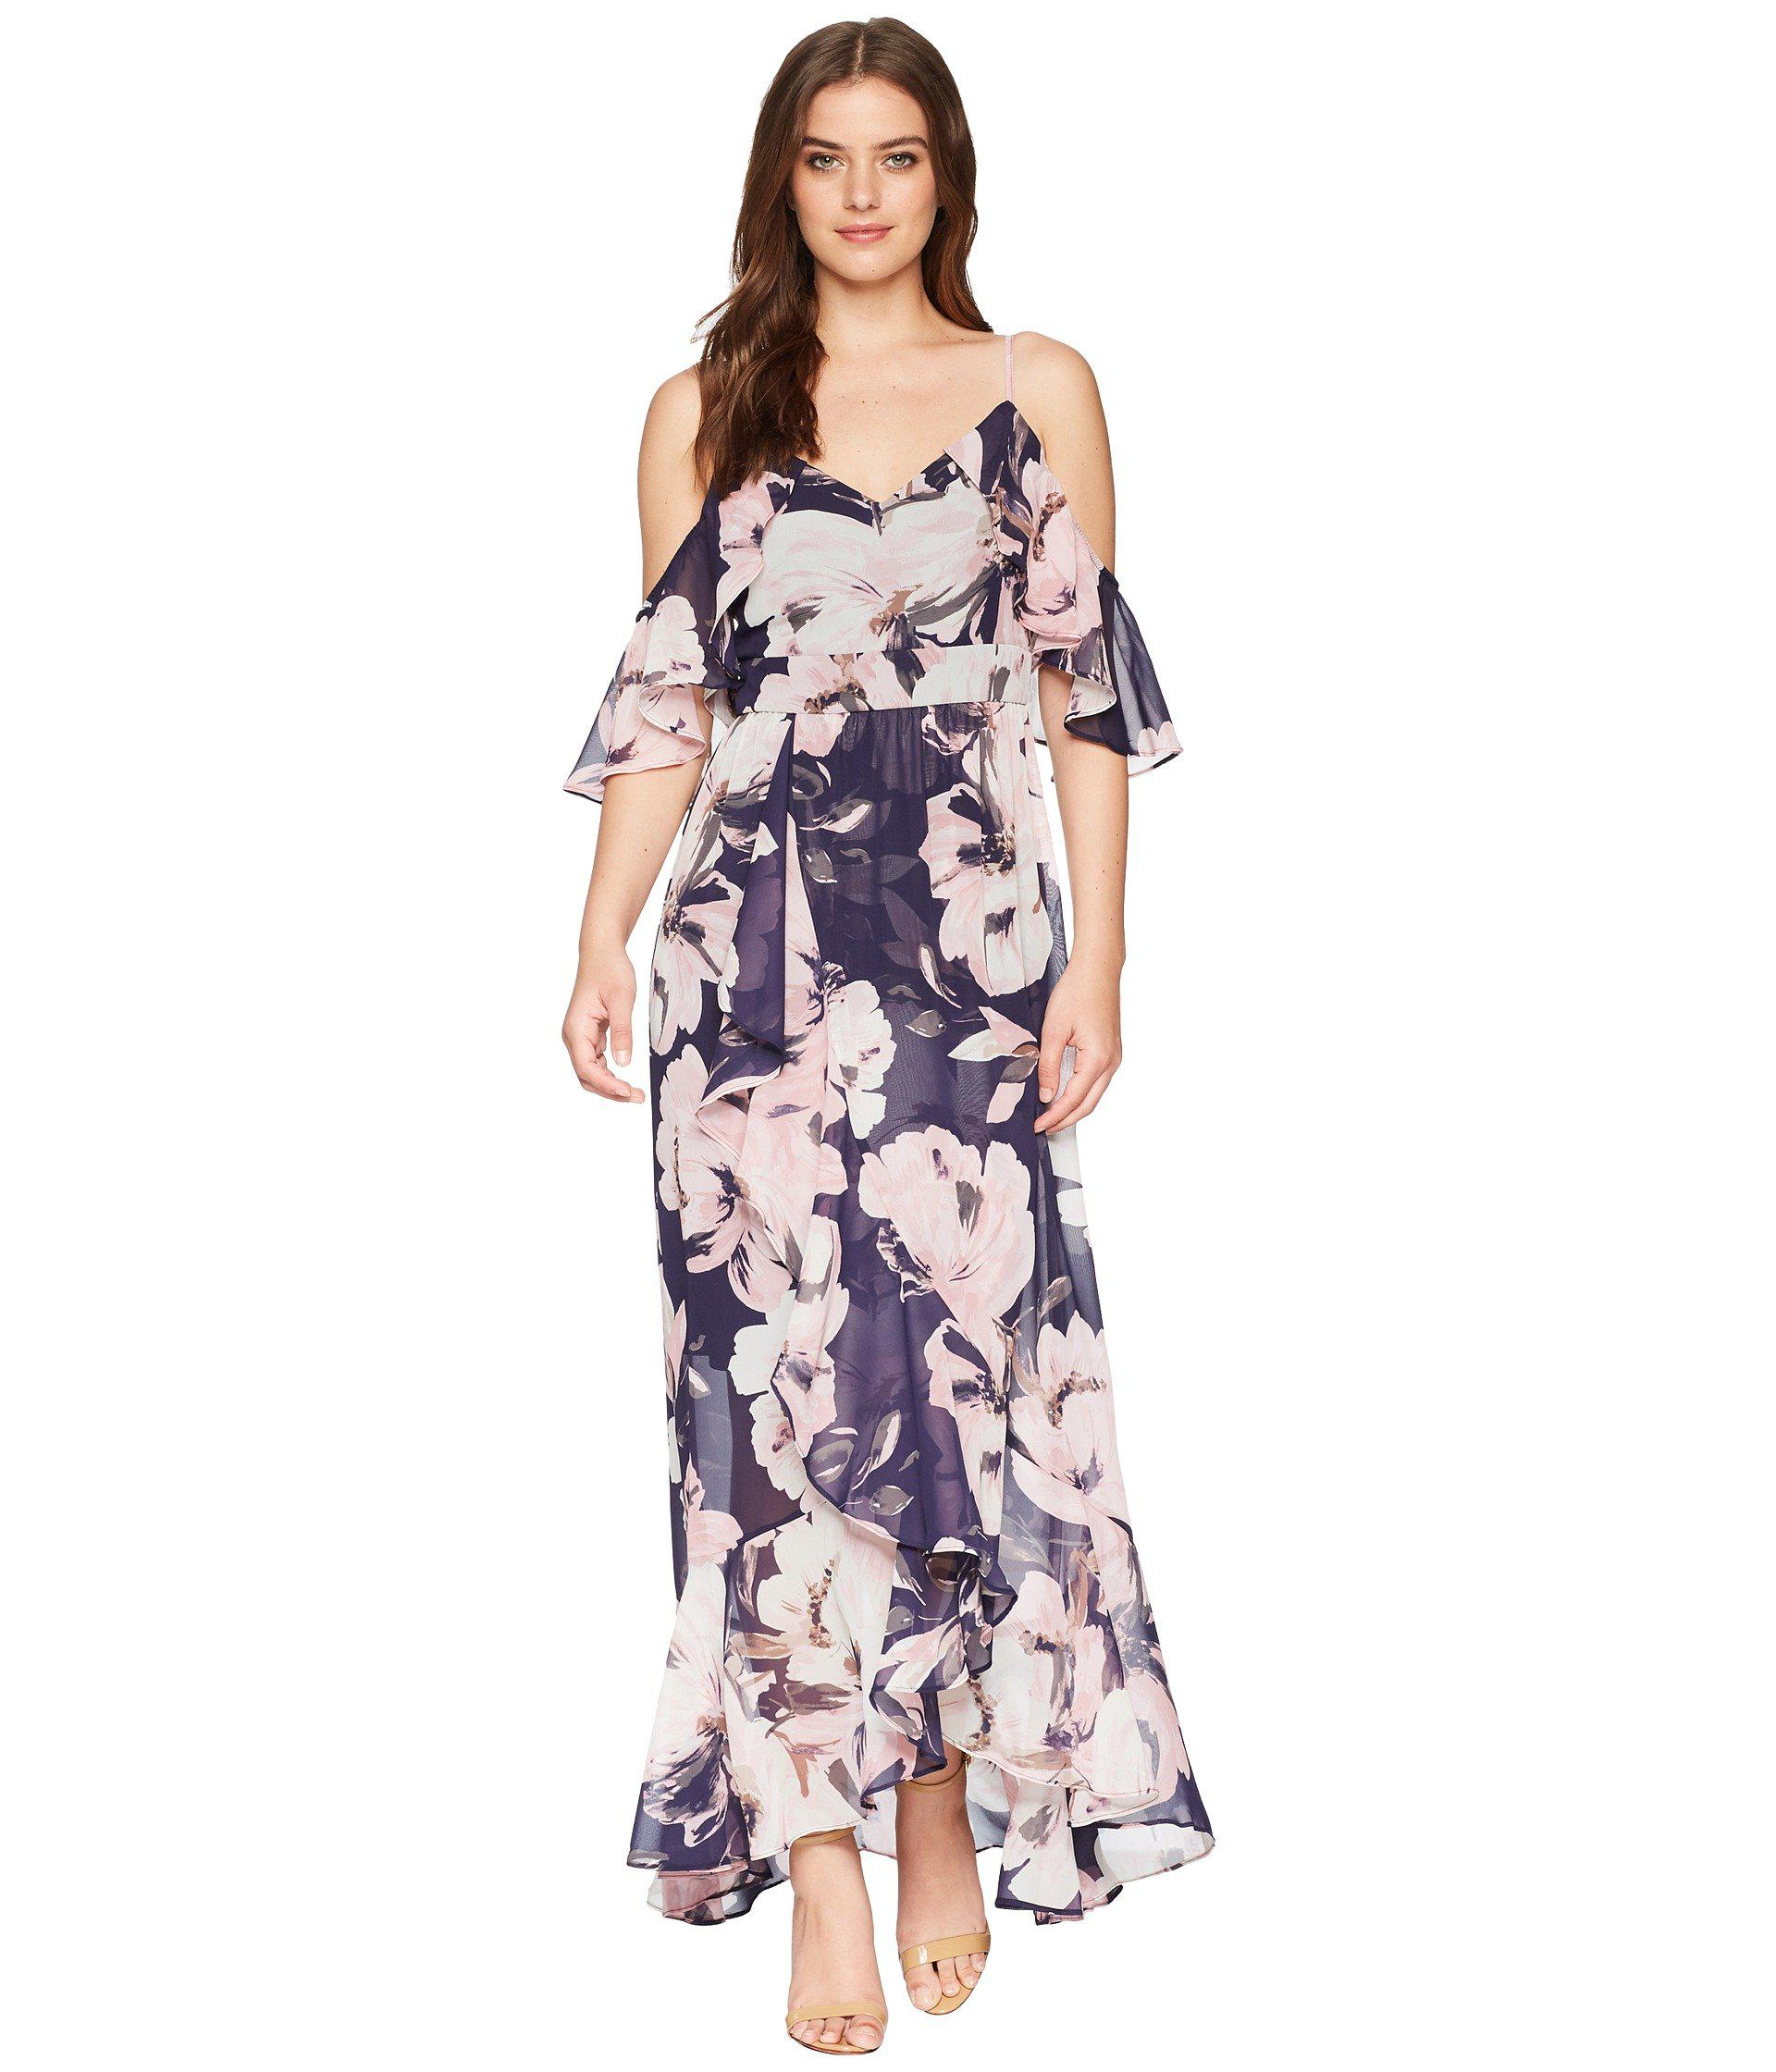 6feed00b609 Vince Camuto. Women s Blue Printed Chiffon Cold Shoulder Maxi Dress With  Ruffled Skirt